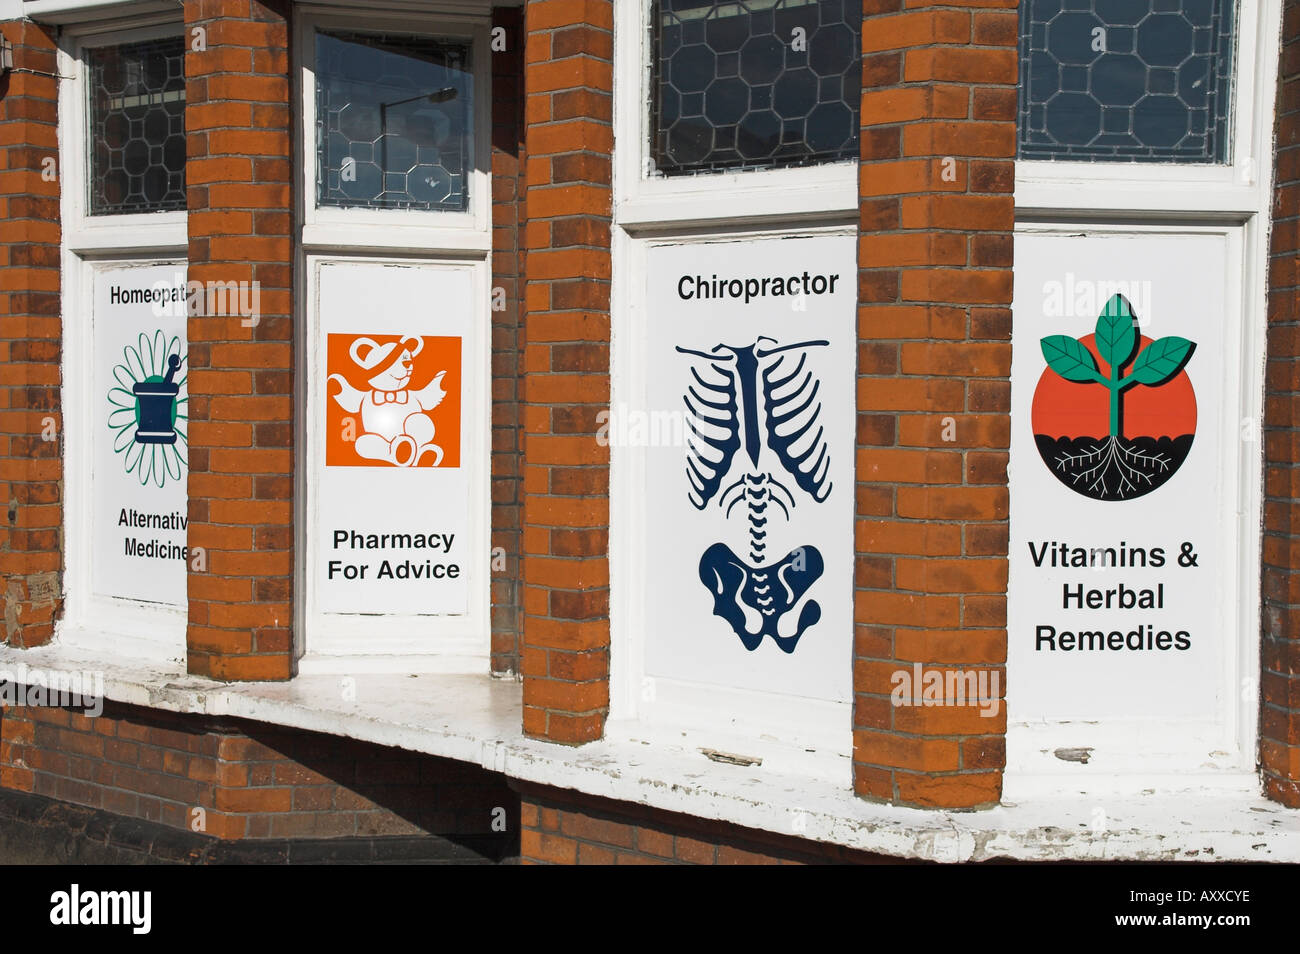 pharmacy practitioners of alternative medicine - Stock Image